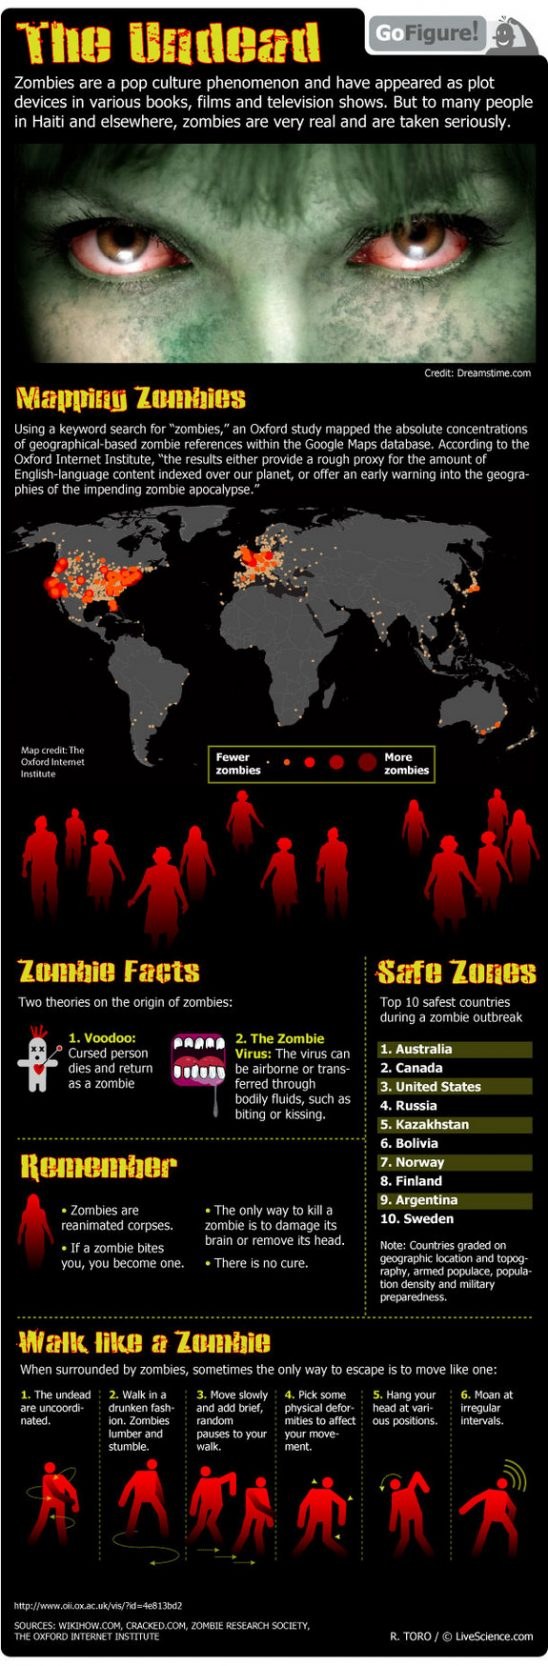 go figure zombies 121015 Zombie Facts: Real and Imagined Infographic